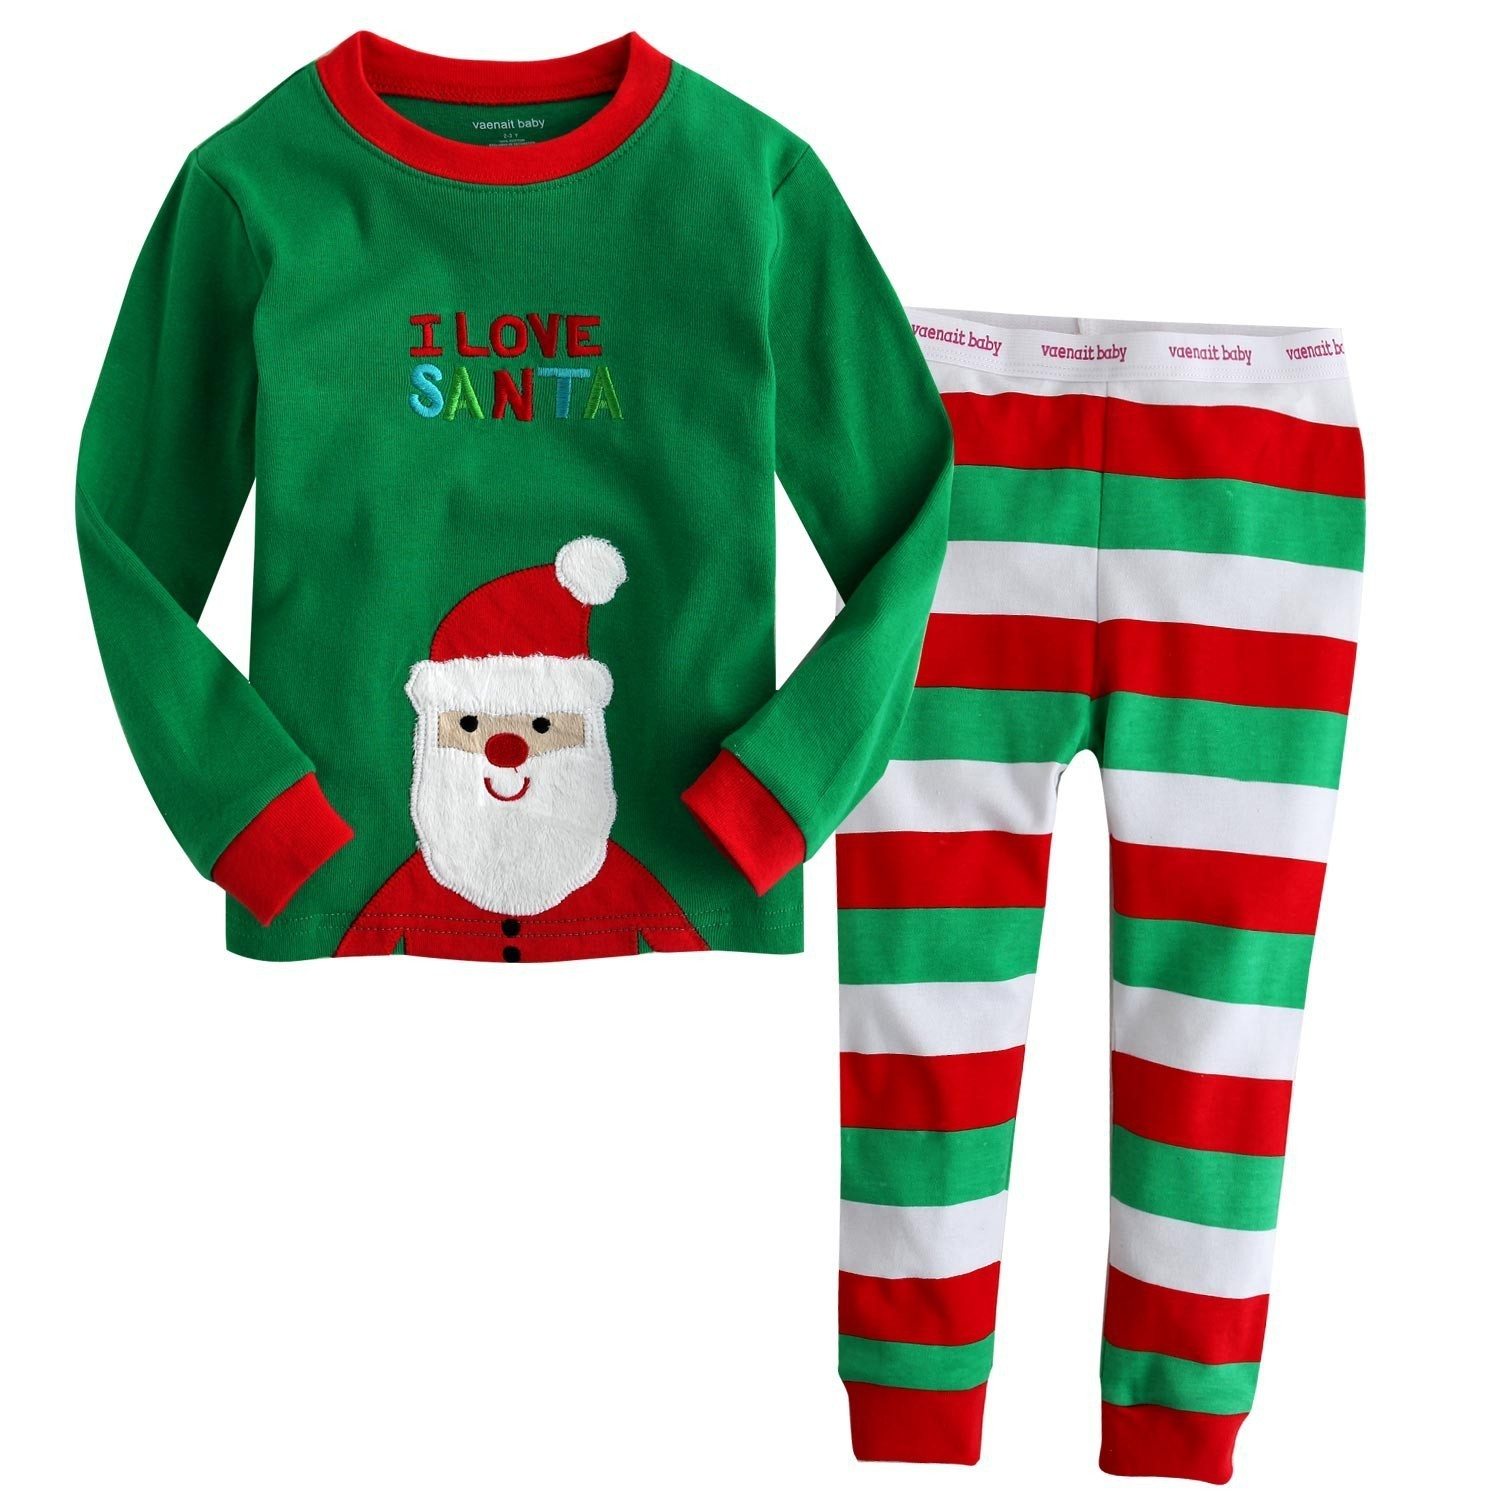 Age 2t-8 Y kids christmas pajamas set baby pijima boy girl sleepwear unisex  long sleeve strip children night suit pjs pj 43dd7484e